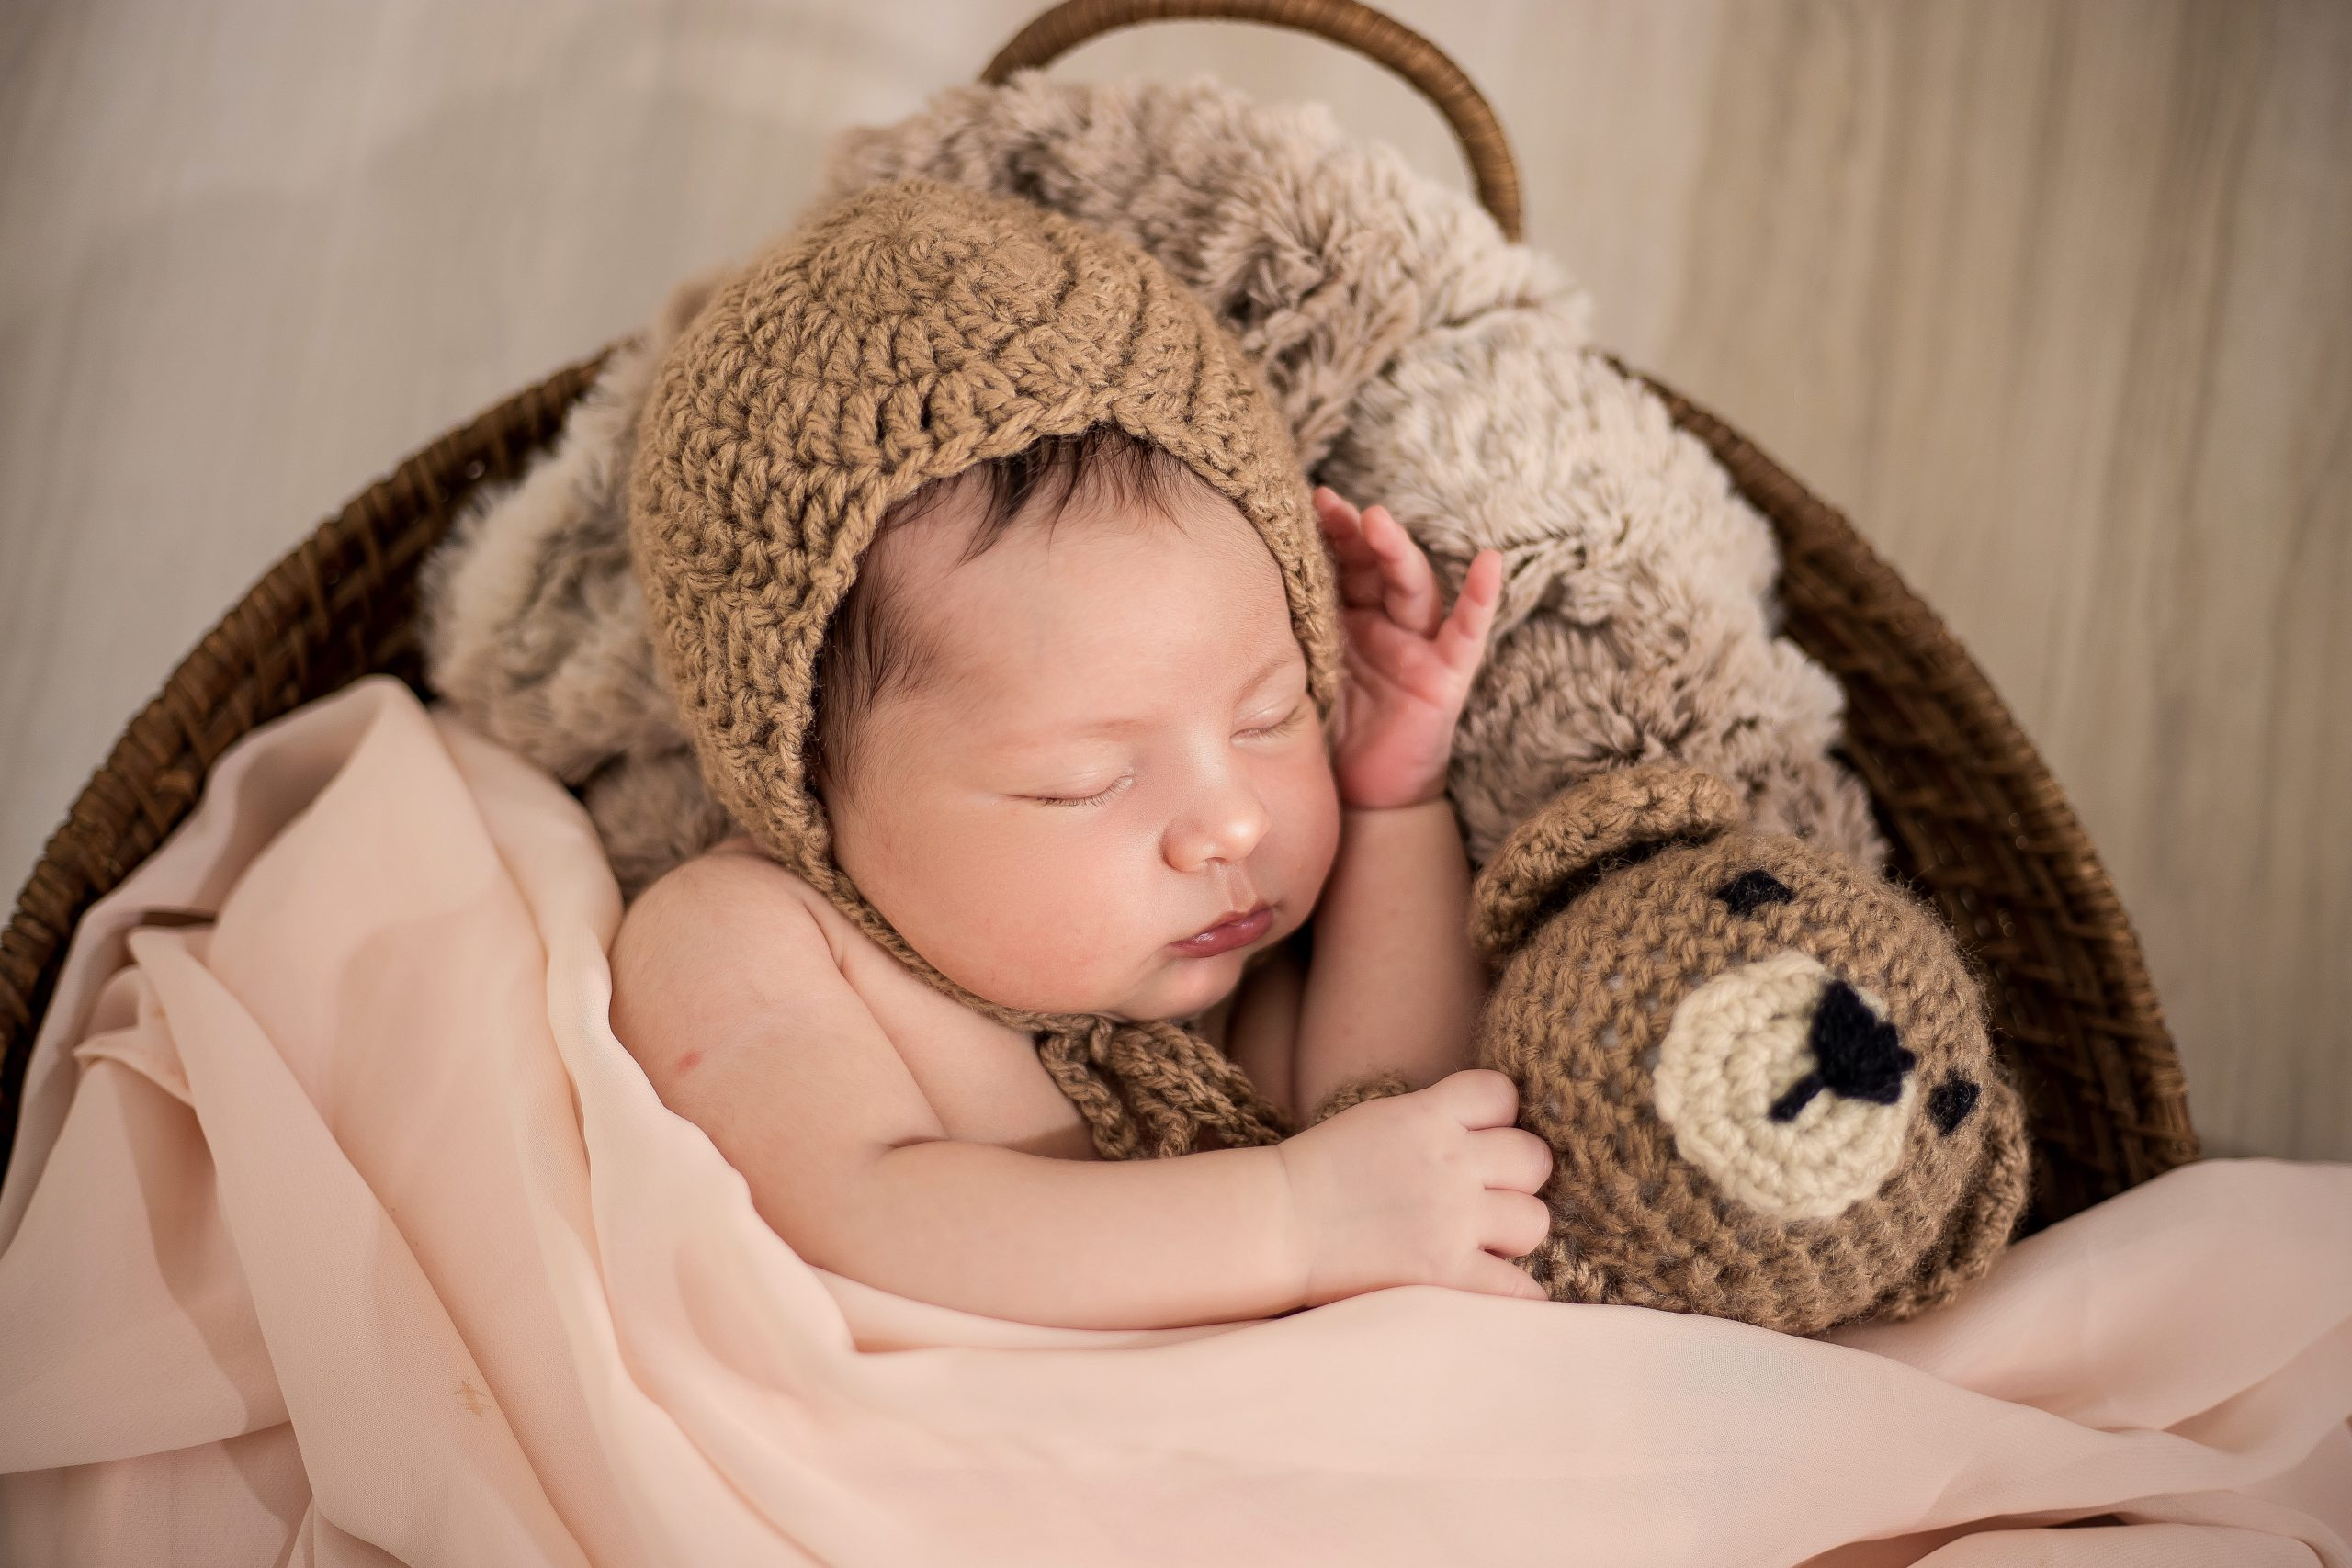 When can a baby sleep with a blanket?